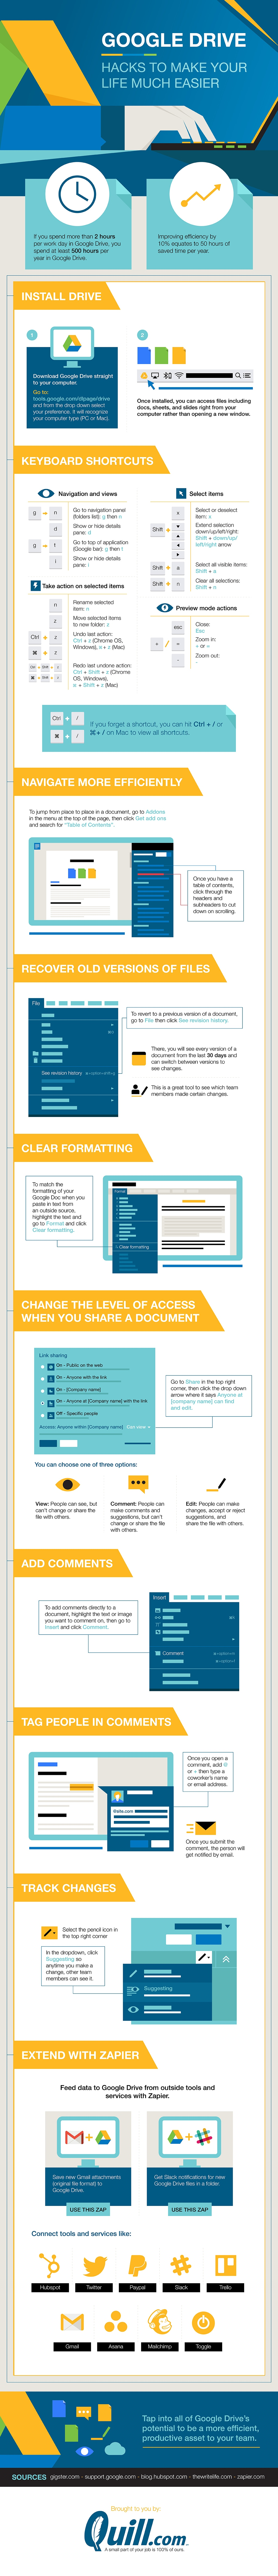 How to Optimize Productivity with Google Drive - Infographic